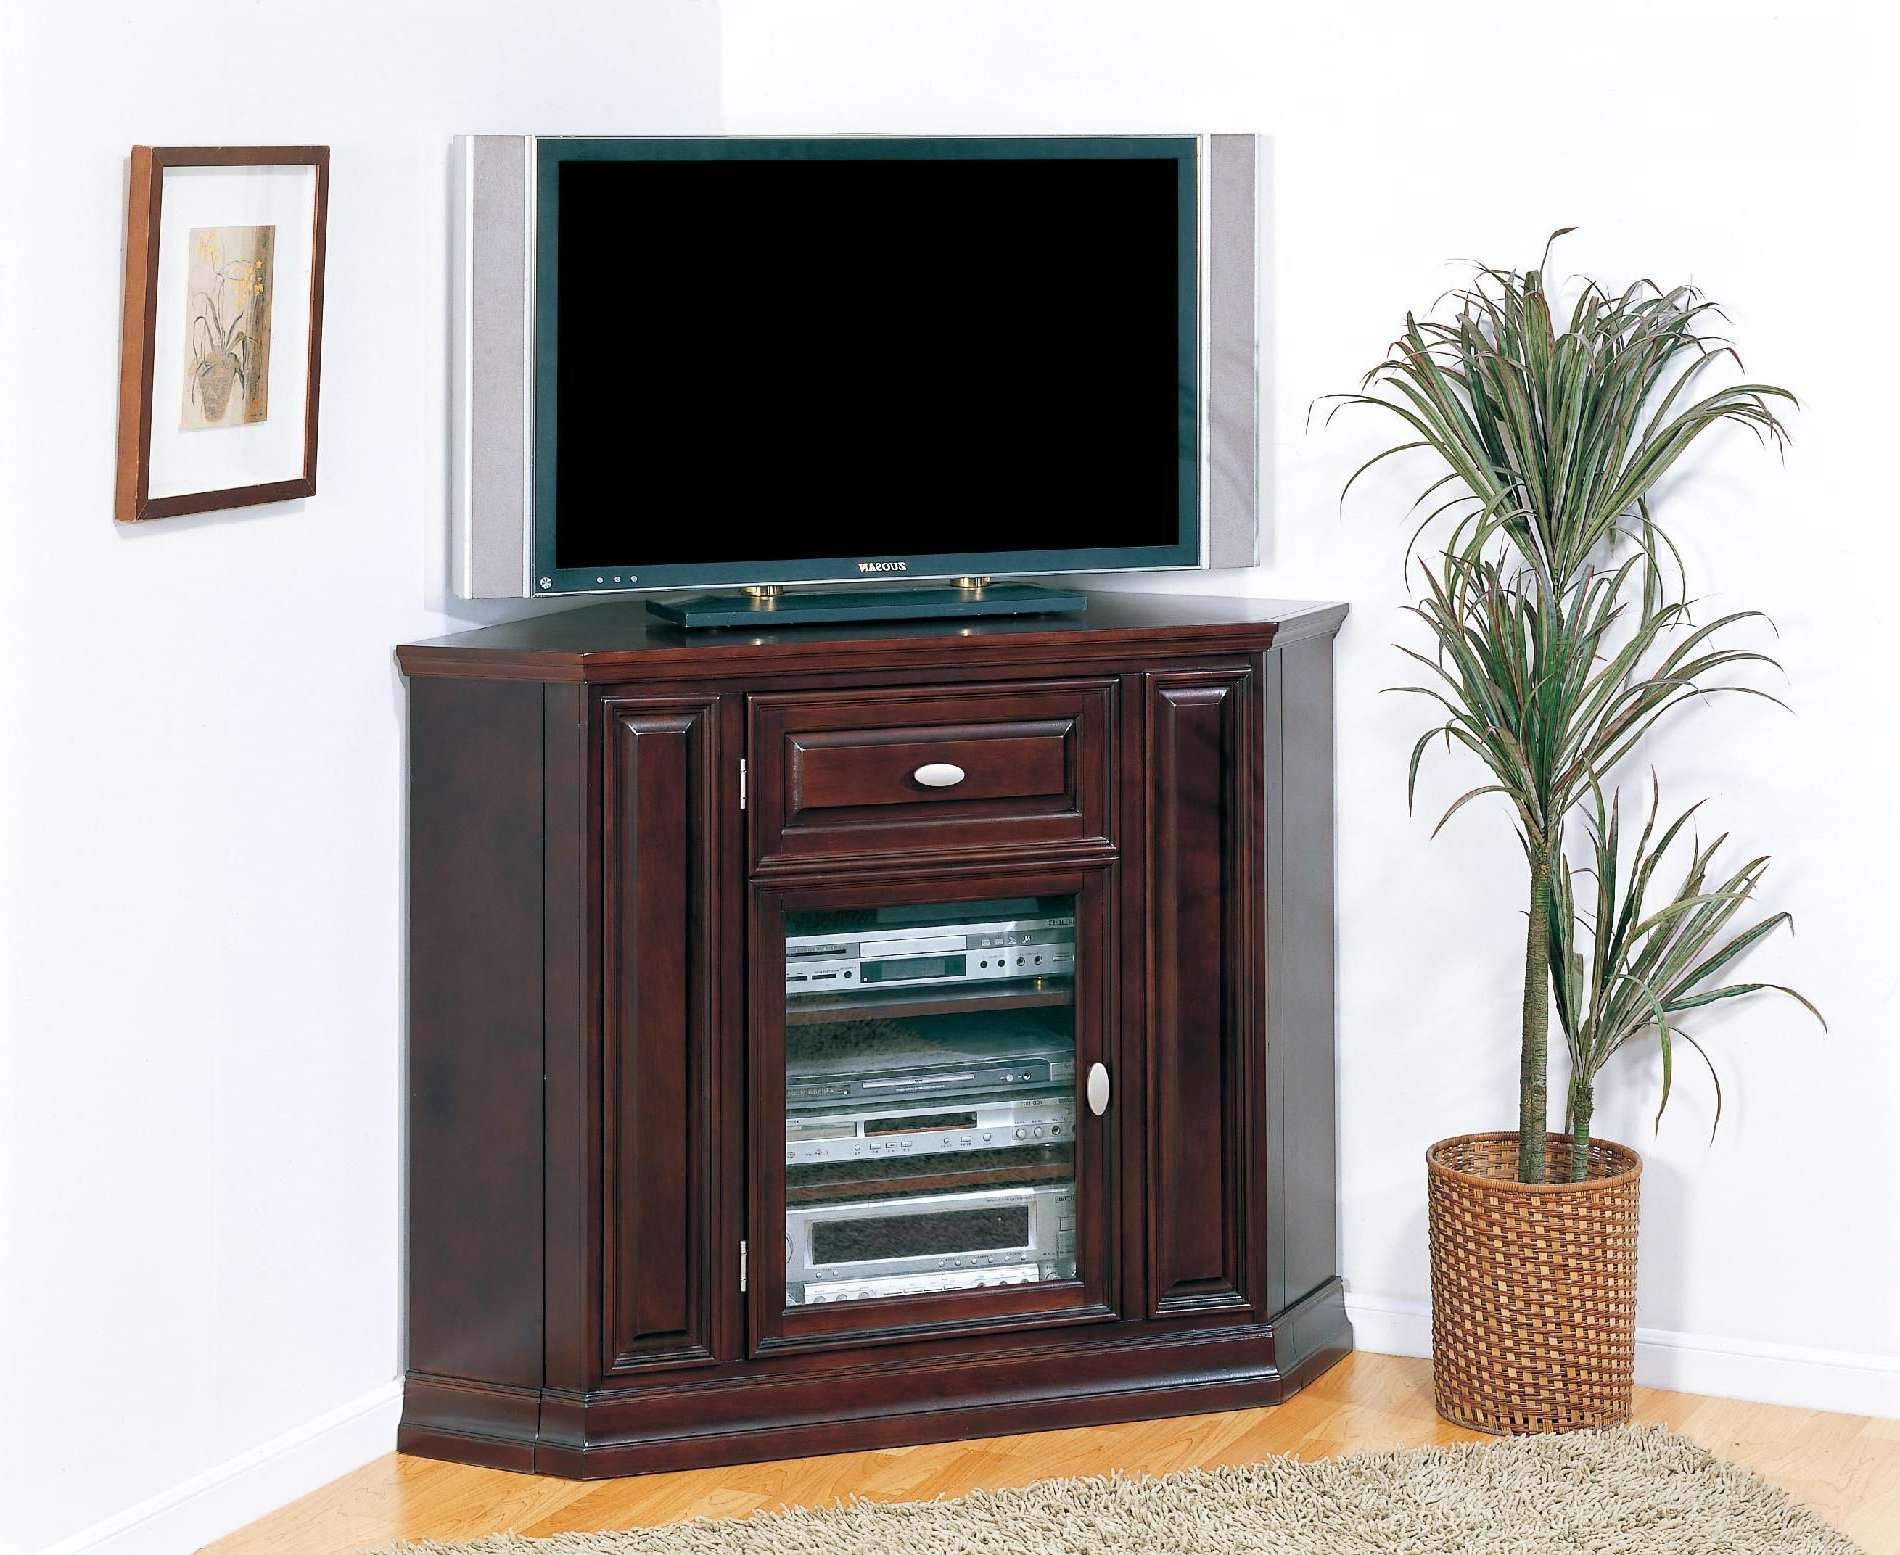 Tall Corner Tv Cabinet With Glass And Wood Doors Plus Drawer Of With Corner Tv Stands With Drawers (View 7 of 15)